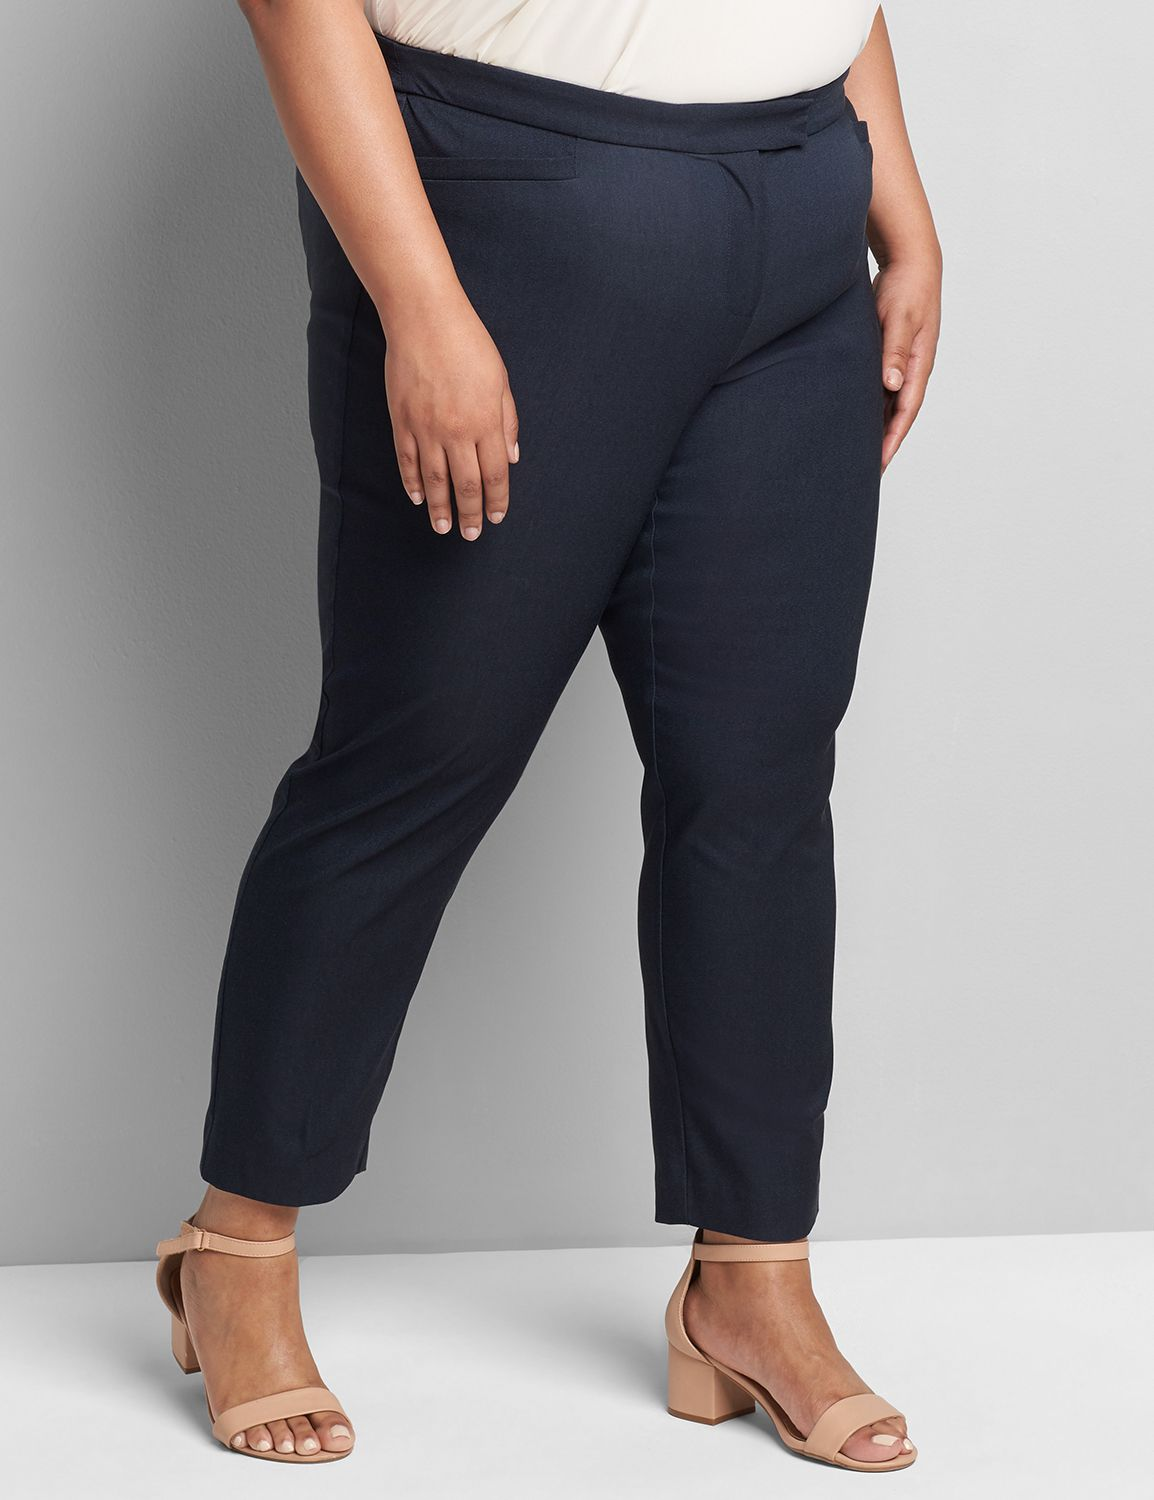 denim,-Lane Bryant Women's Madison Ankle Pant 18 Faux Denim